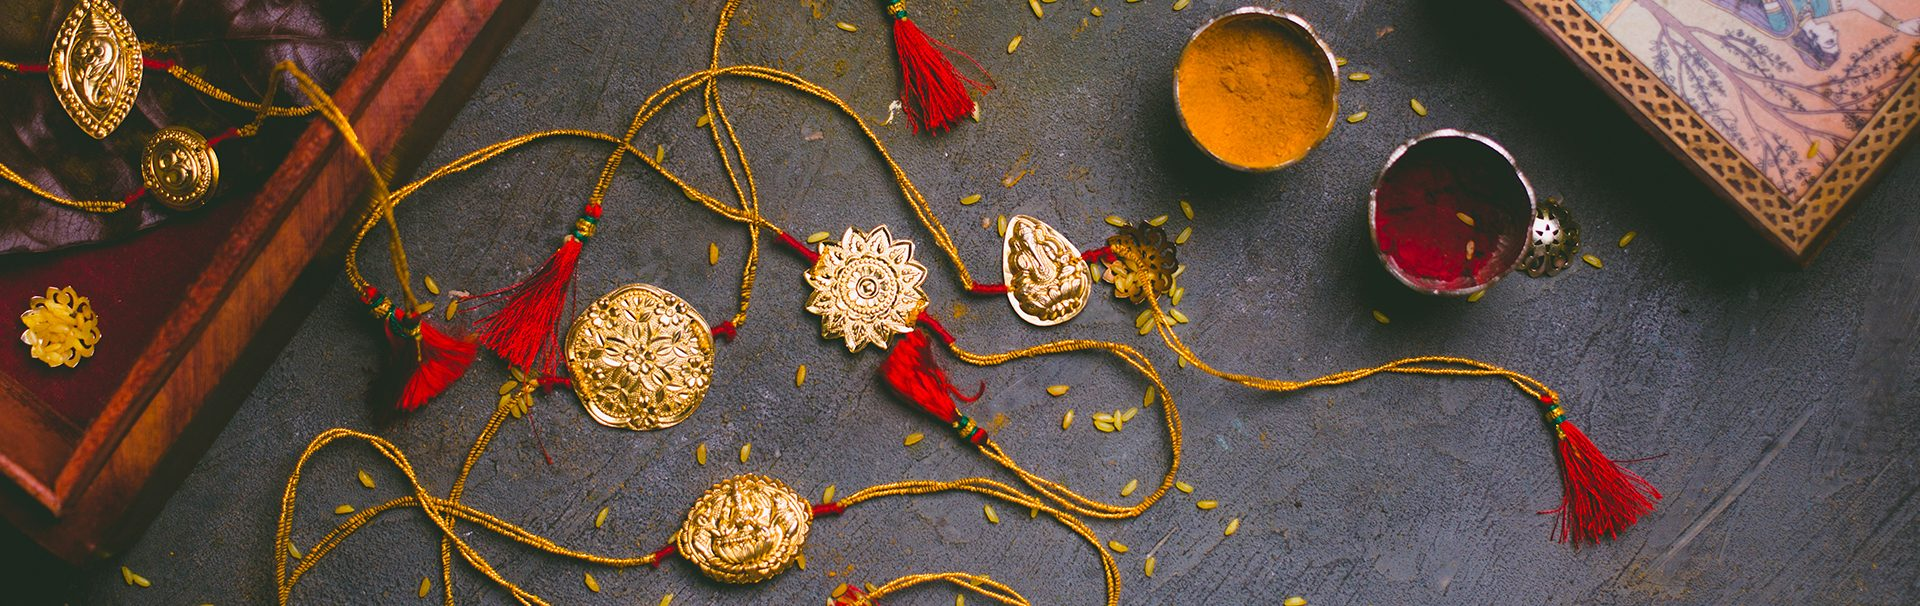 Gold coated silver rakhi's